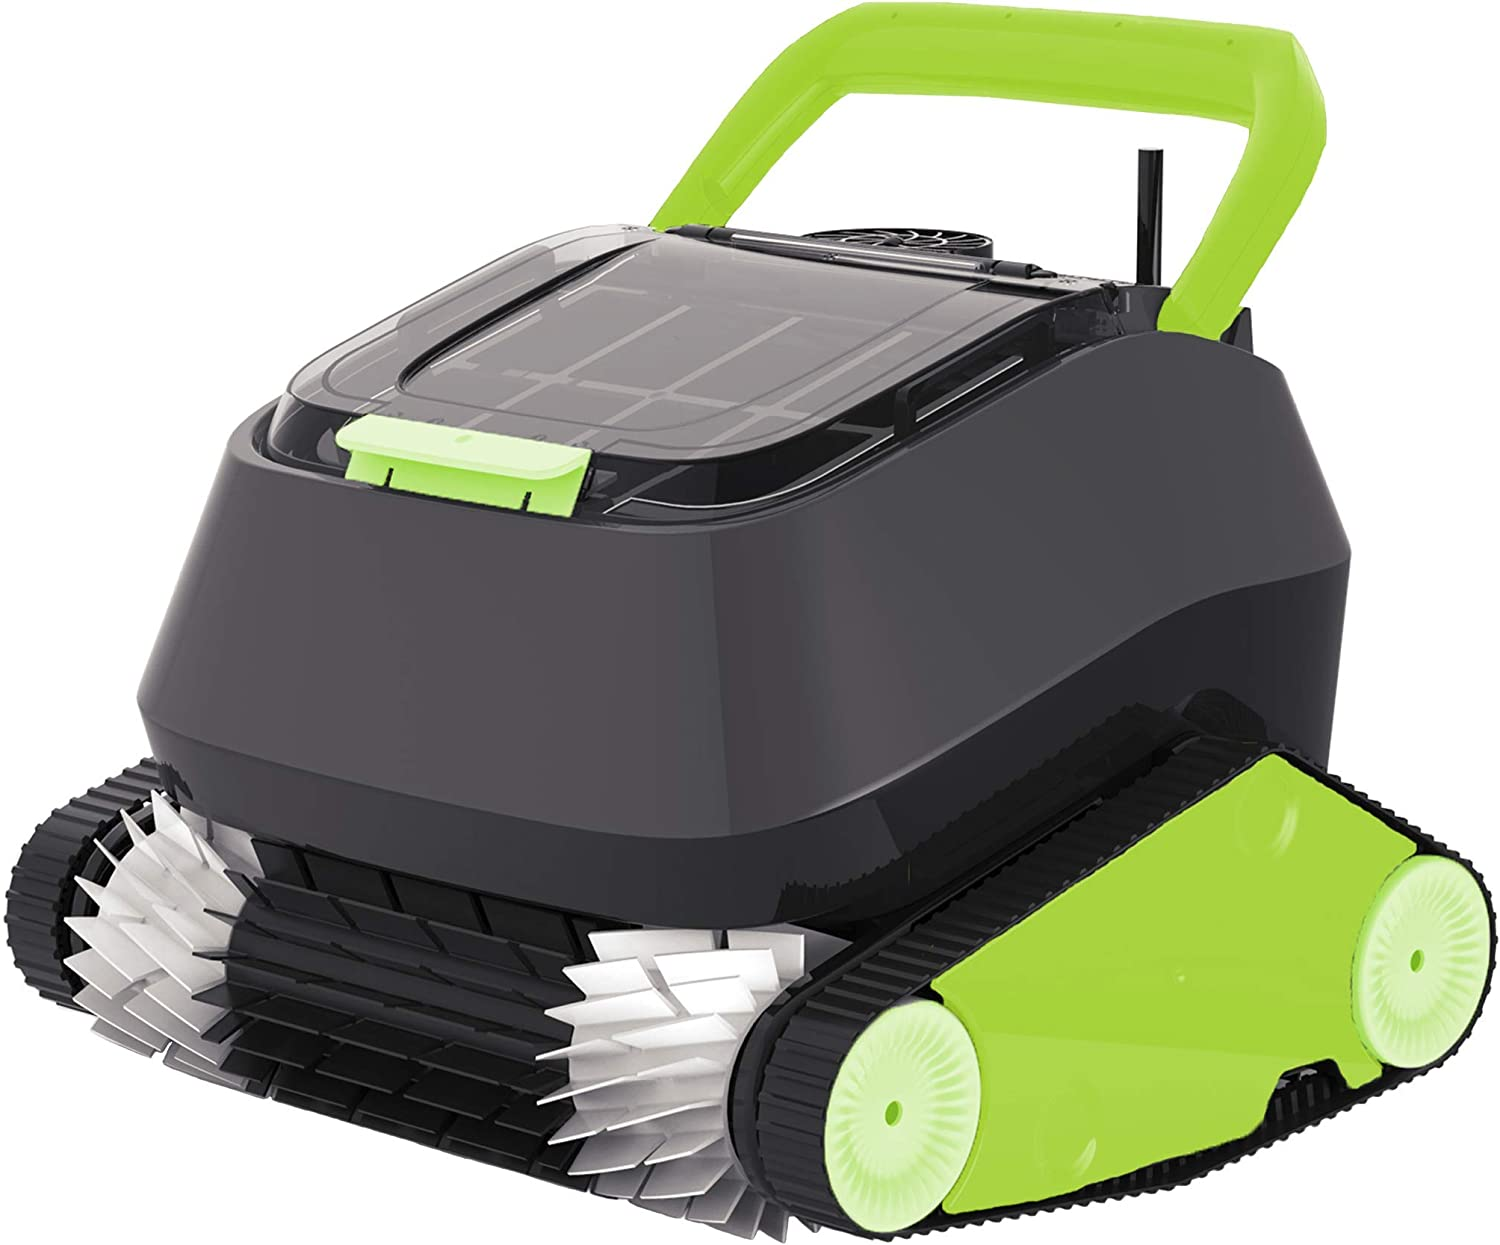 8STREME Inground Automatic Pool Cleaner